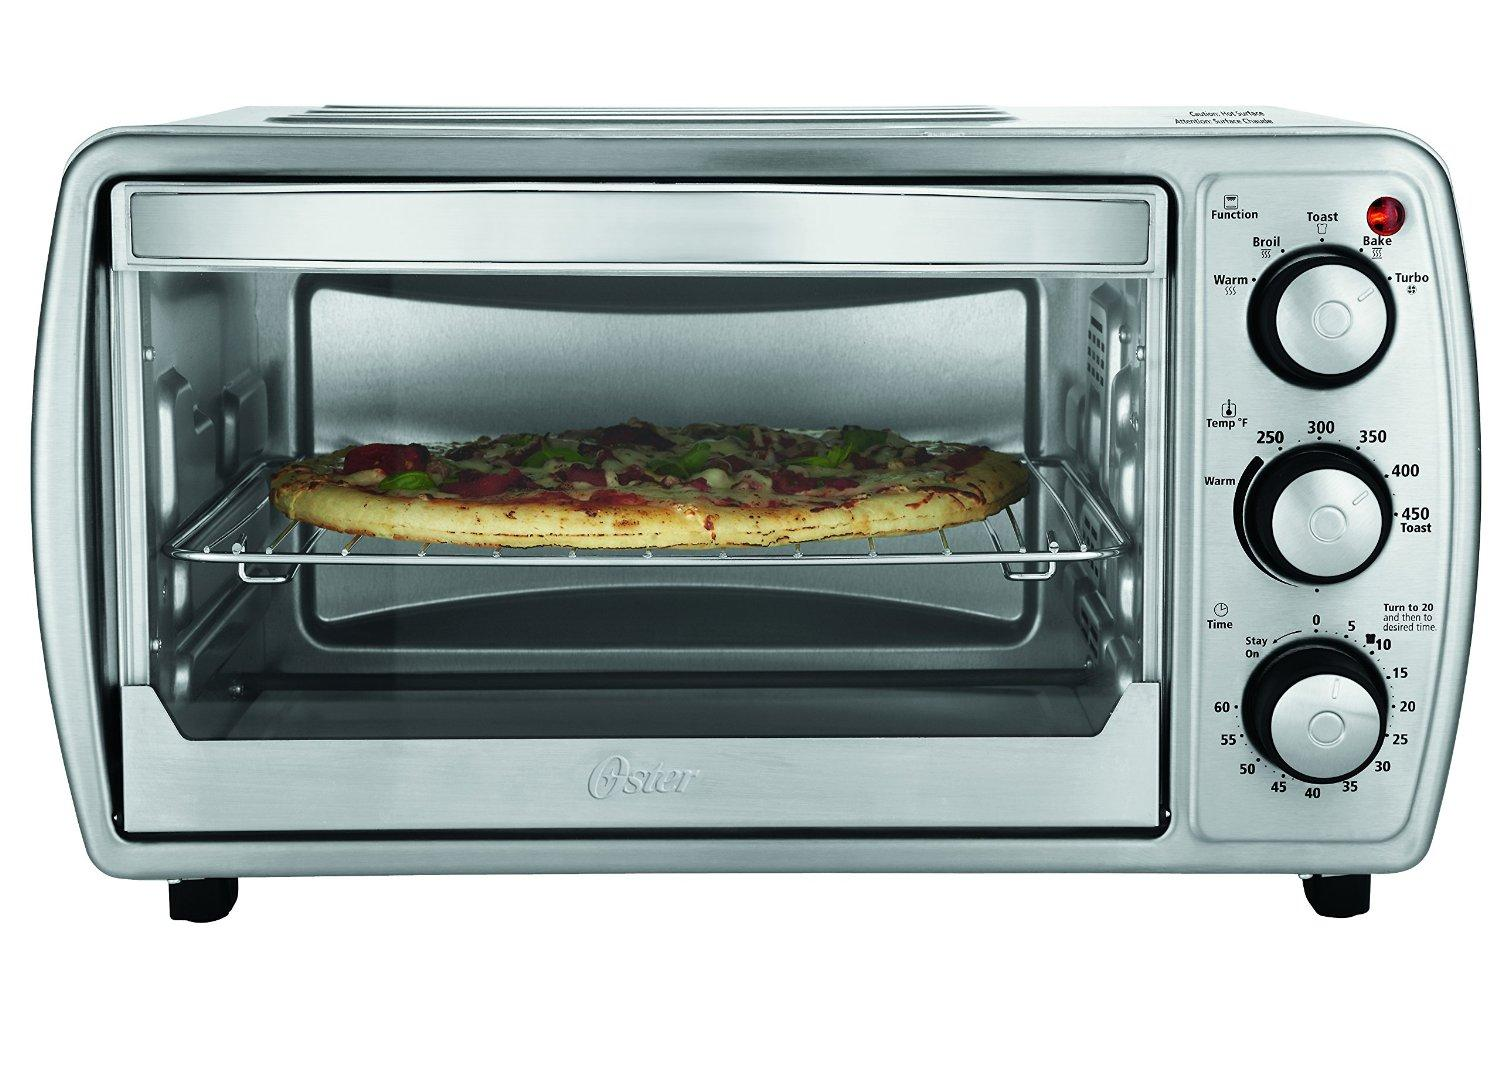 Amazon.com: Oster TSSTTVCG02 Oster 6 Slice Convection Toaster Oven ...